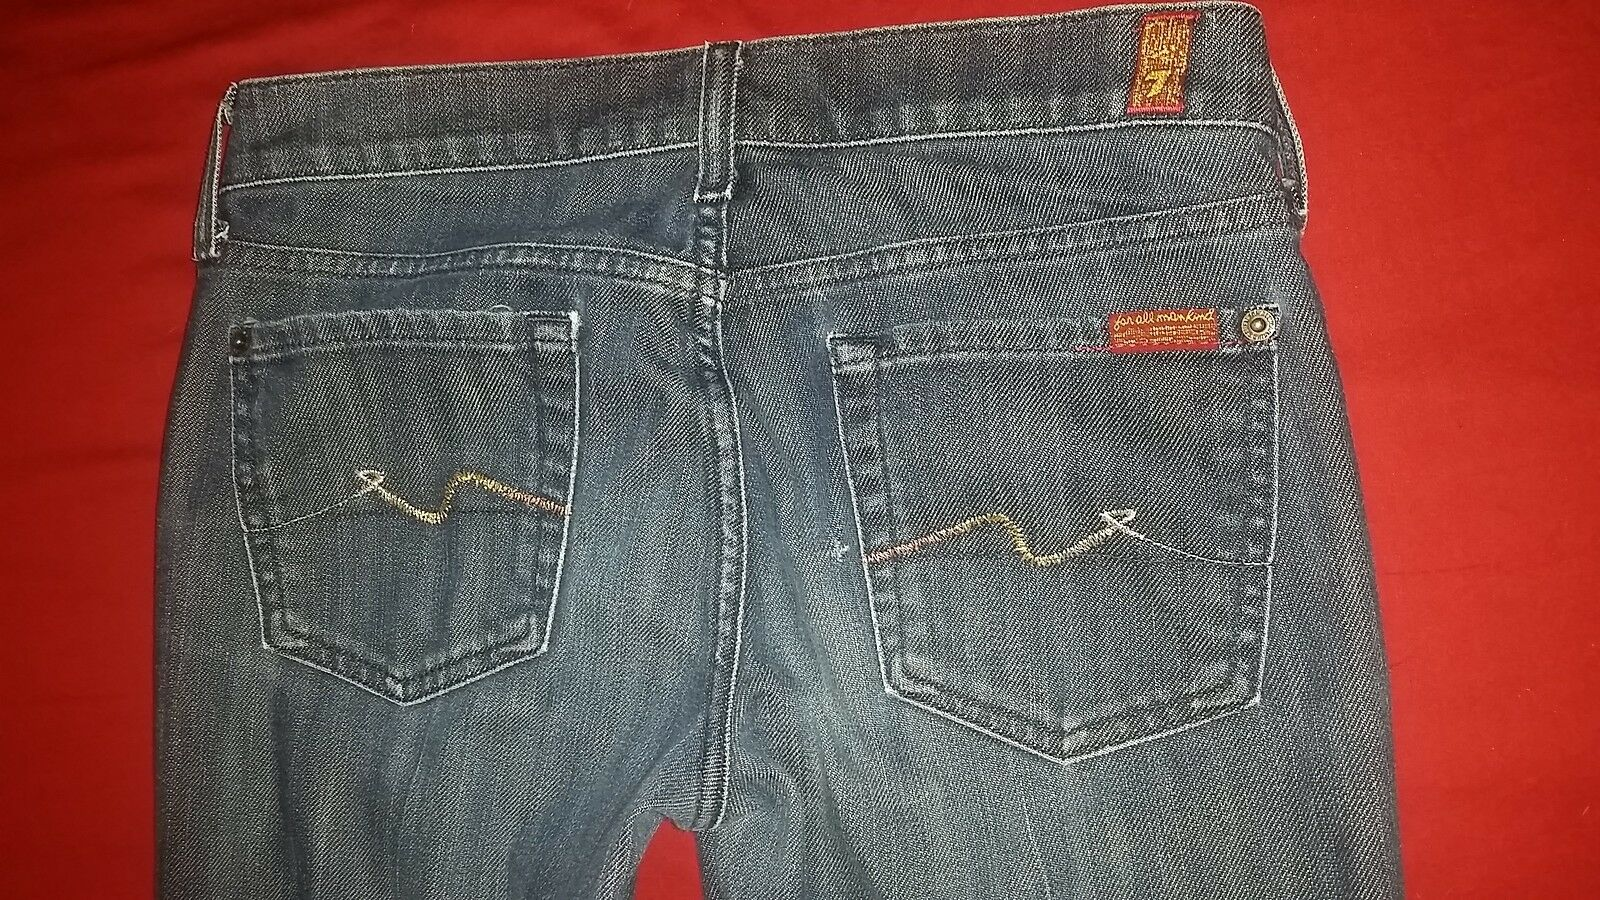 7 For All Mankind Bootcut Women's Jeans size 26, inseam 32